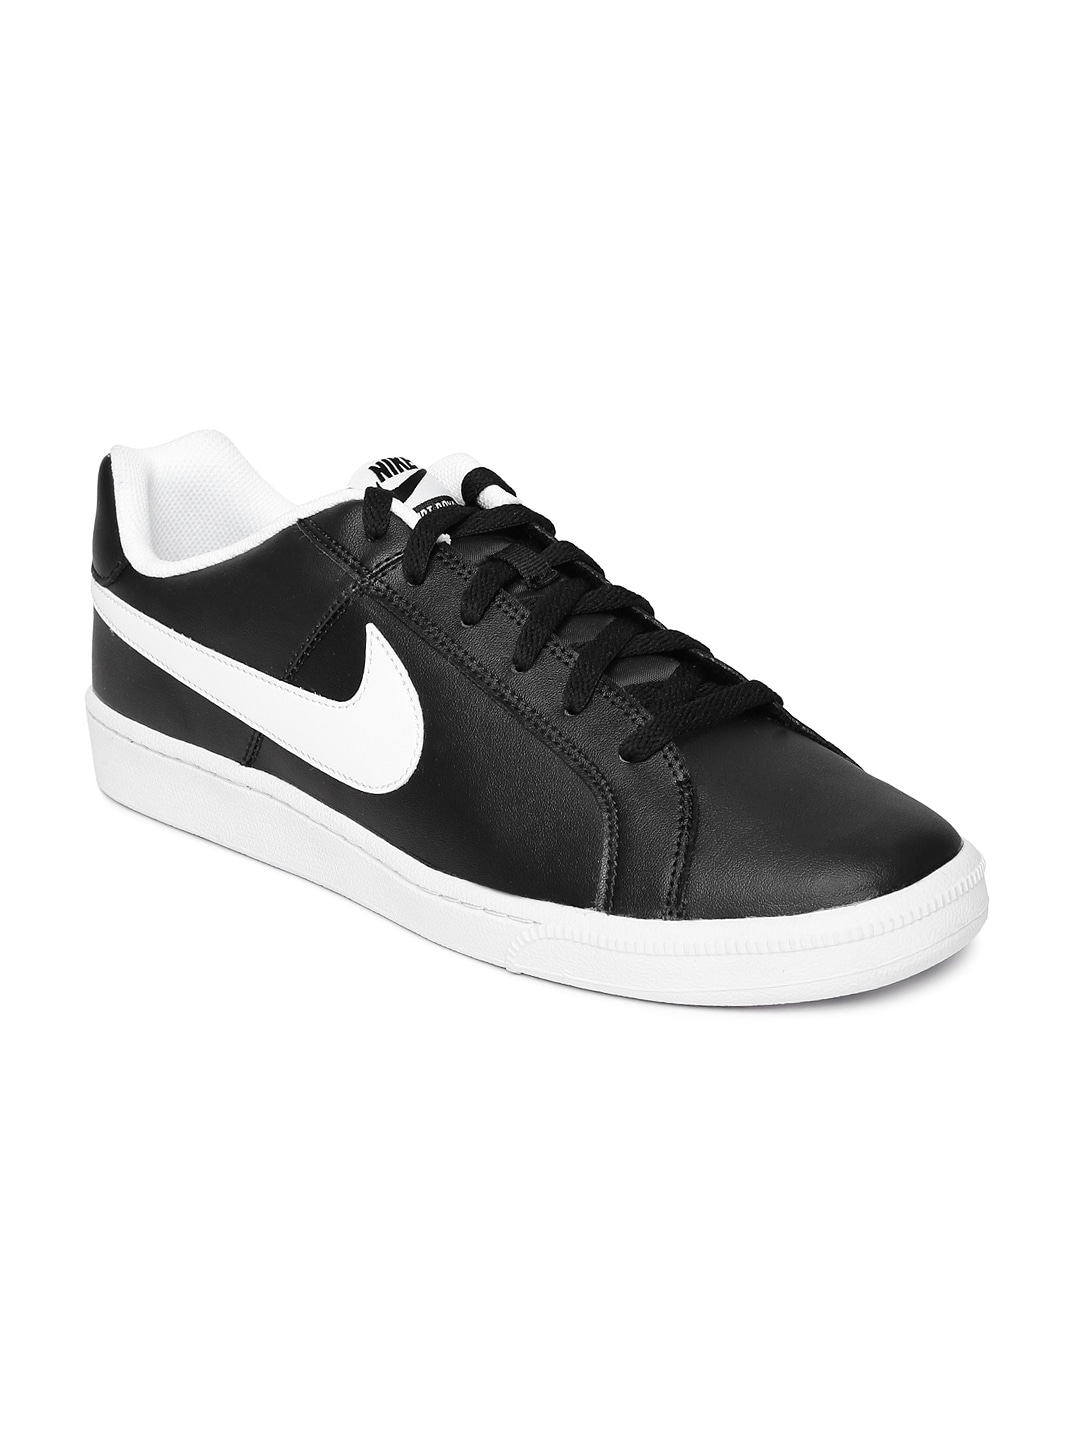 Buy OnlineMyntra Shoes For Menamp; Nike Women LAjc3qR45